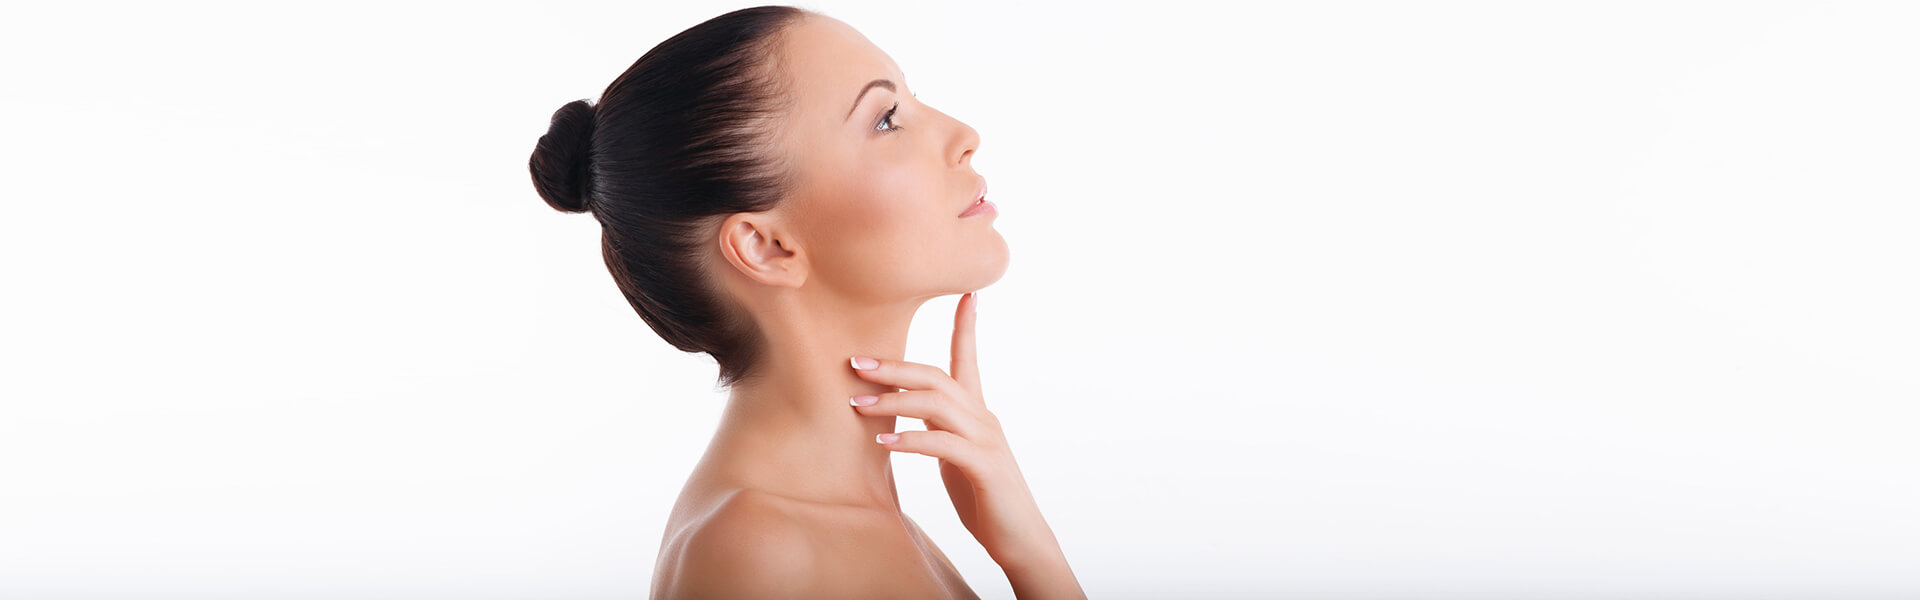 Tighten up Your Neck and Jawline with Precision TX and Kybella Treatments!